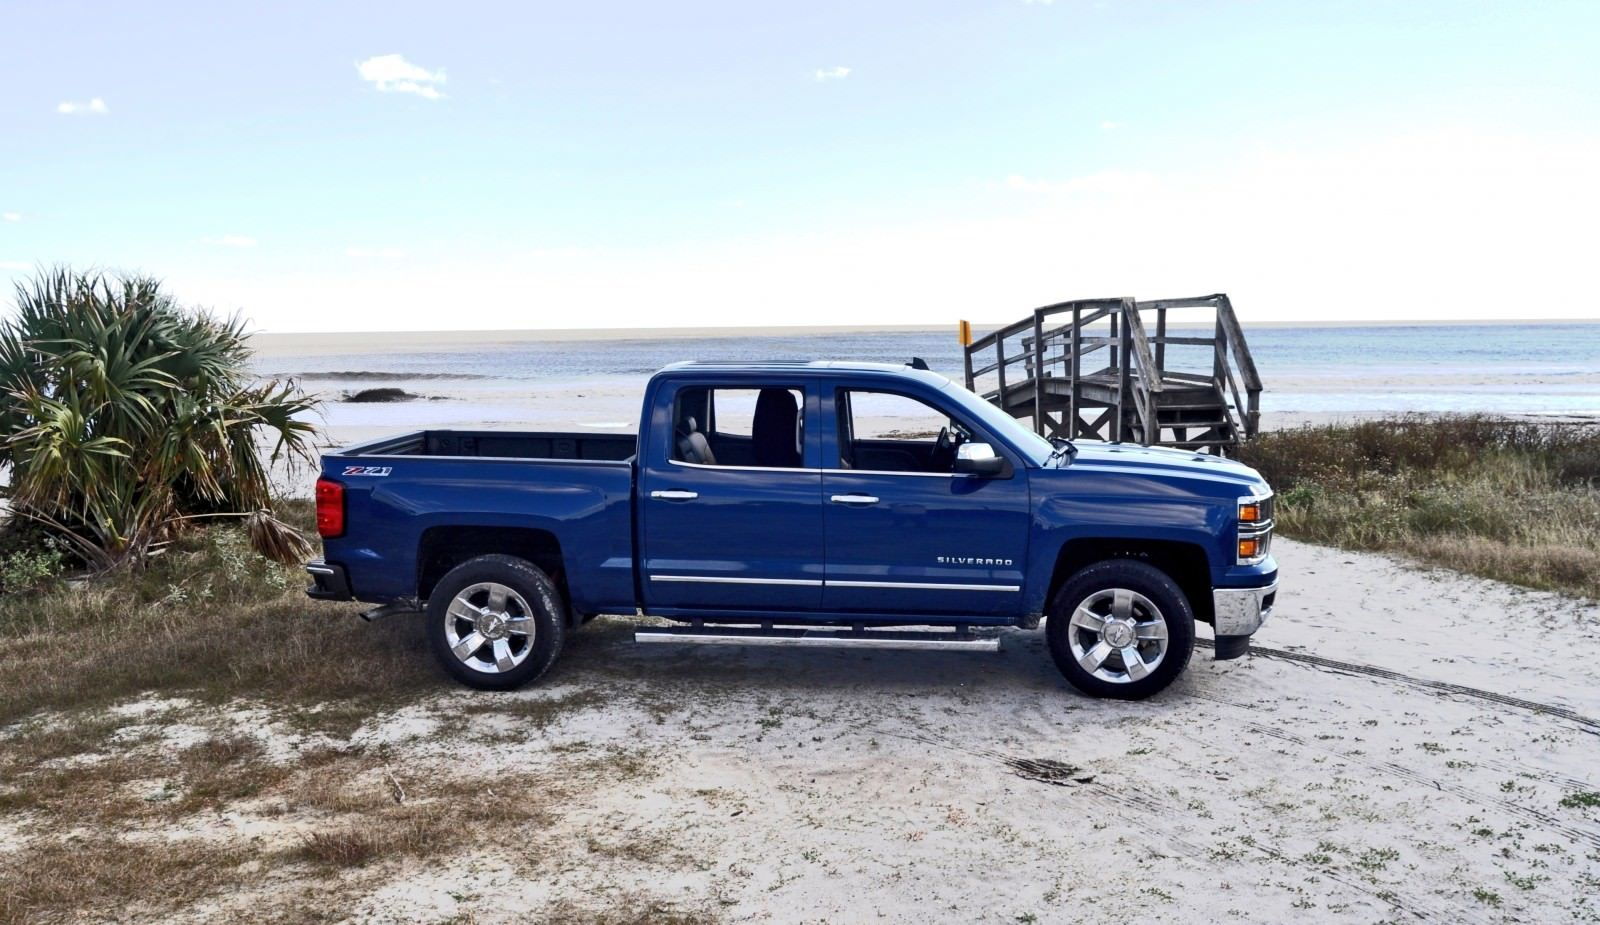 2015 Chevrolet Silverado 1500 Z71 7 » Car-Revs-Daily.com